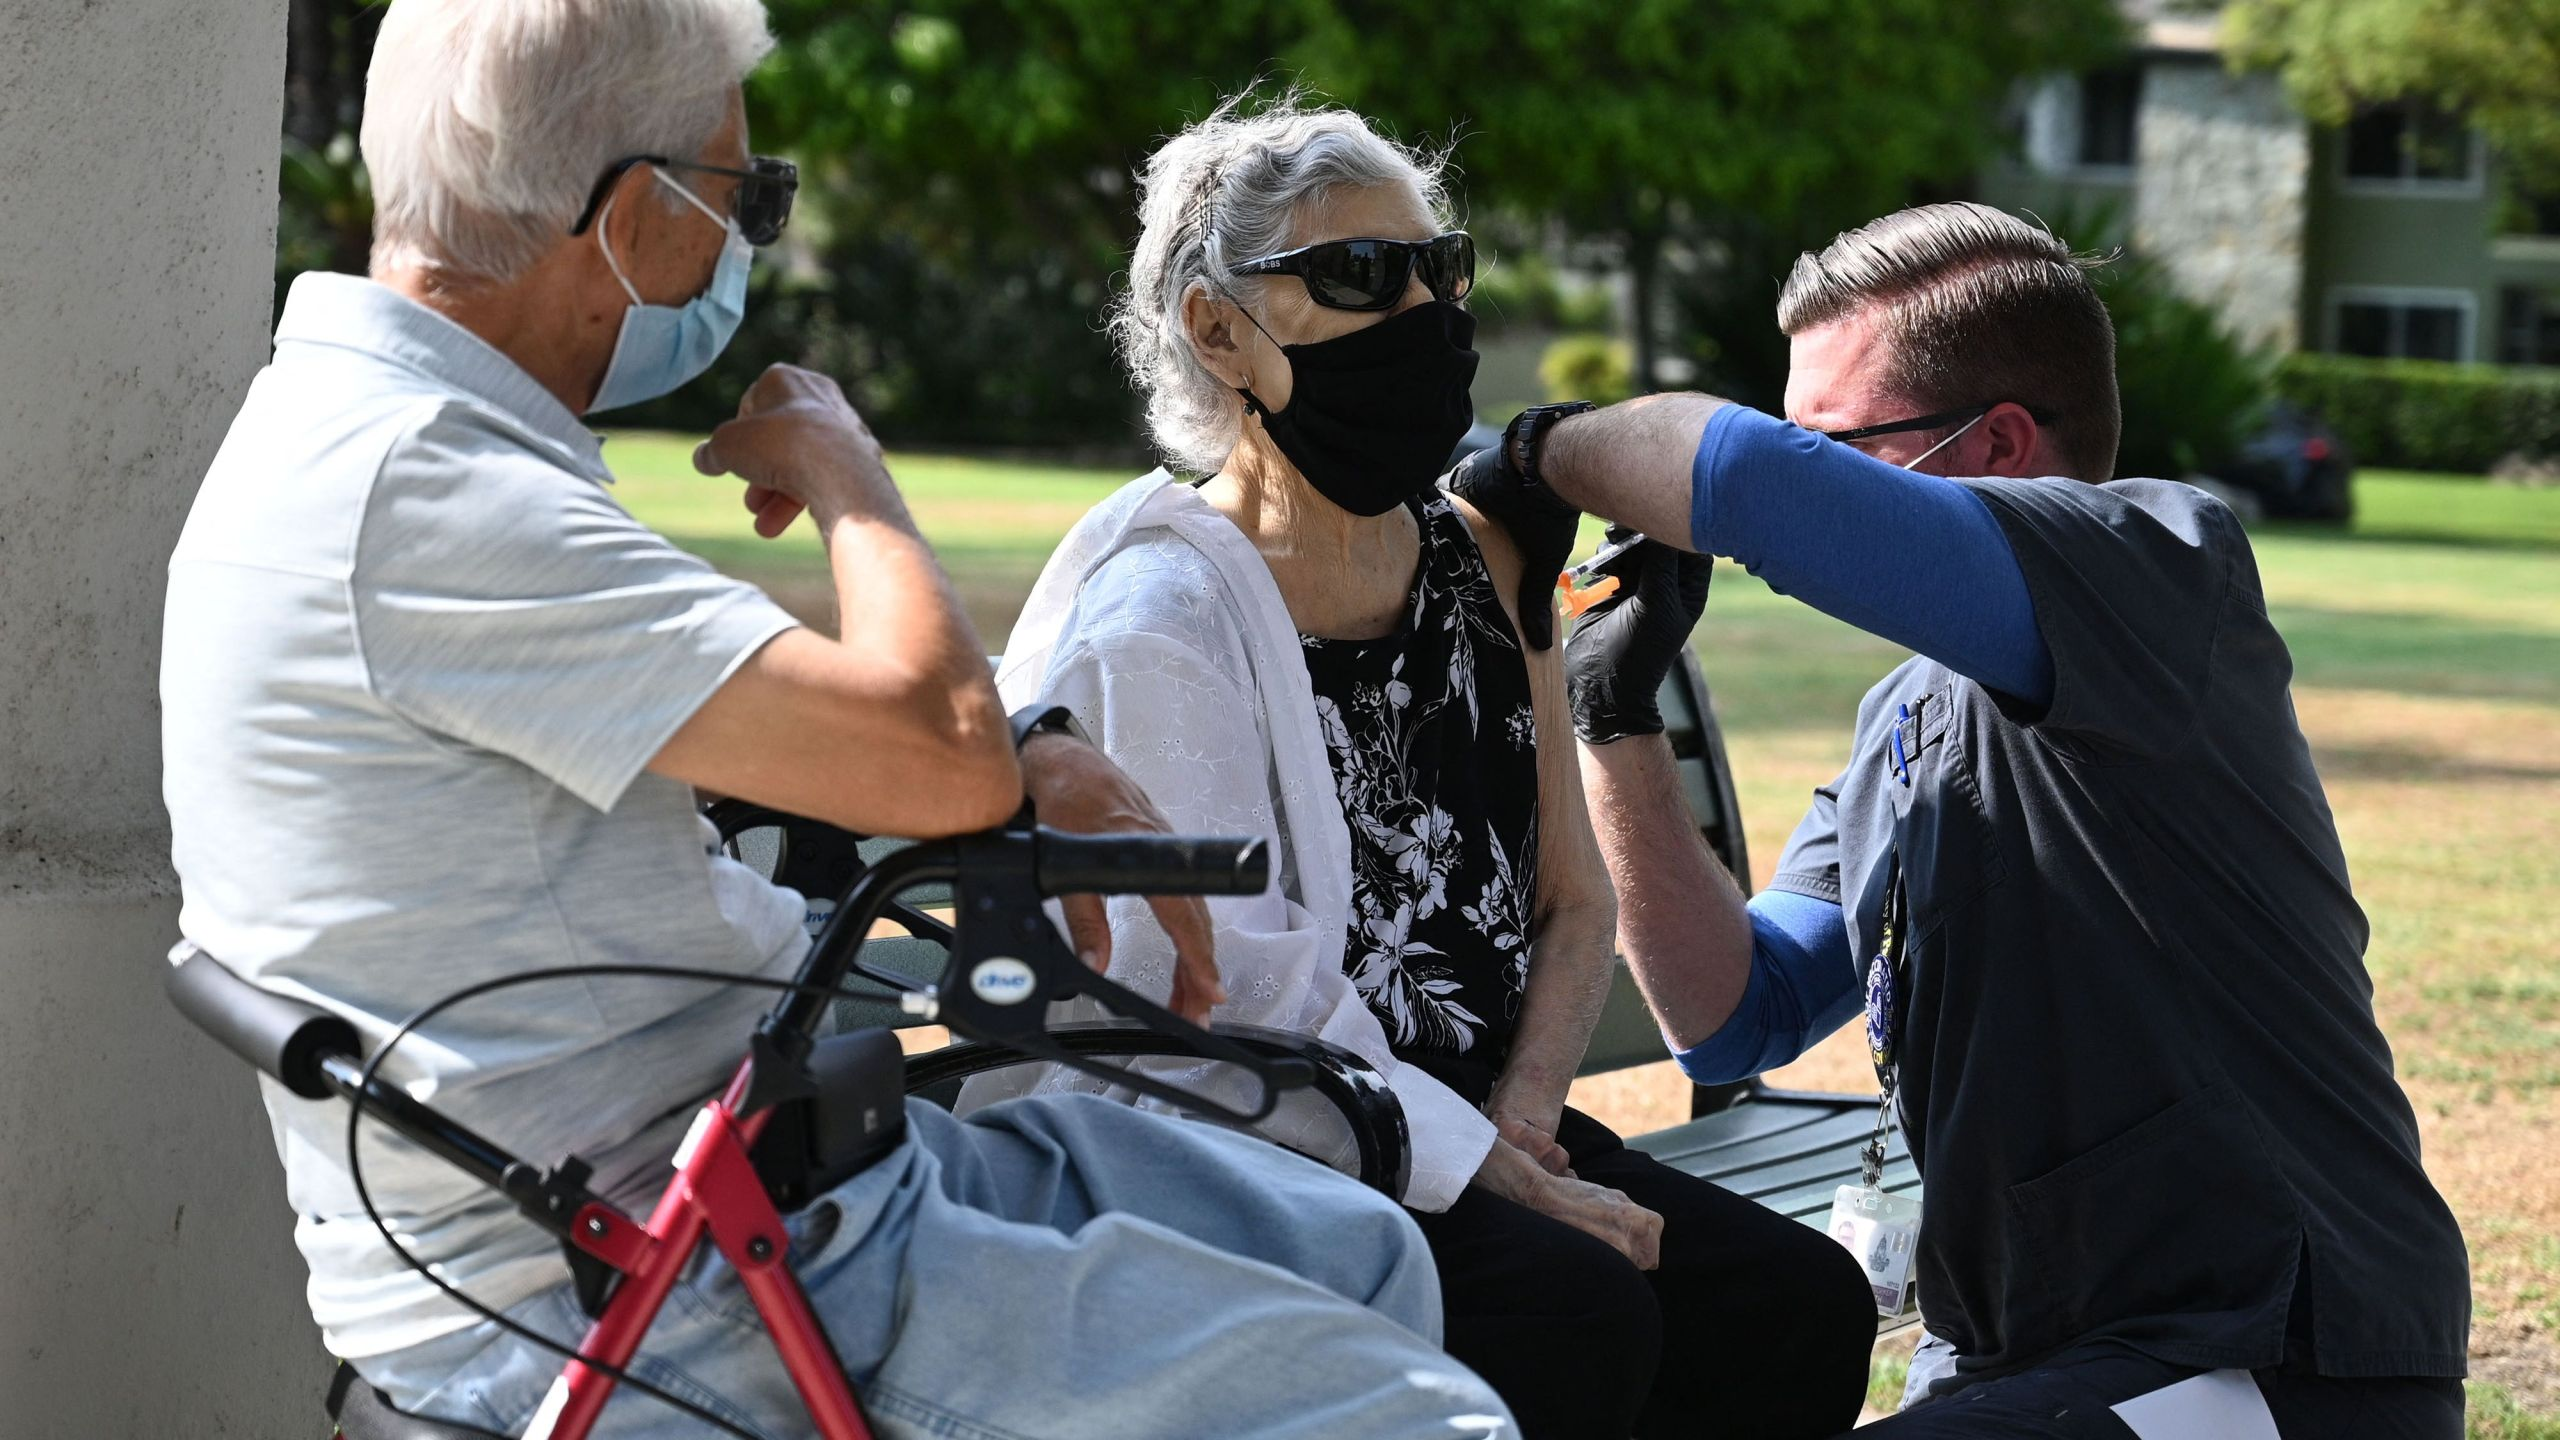 Nurse administers a third booster dose of Pfizer COVID-19 vaccine to Armida Gomez, 81, as her husband Jose Gomez, 80, waits for his turn during a vaccination clinic hosted by Tournament of Roses and the Pasadena Department of Public Health on Aug. 19, 2021 . (ROBYN BECK/AFP via Getty Images)